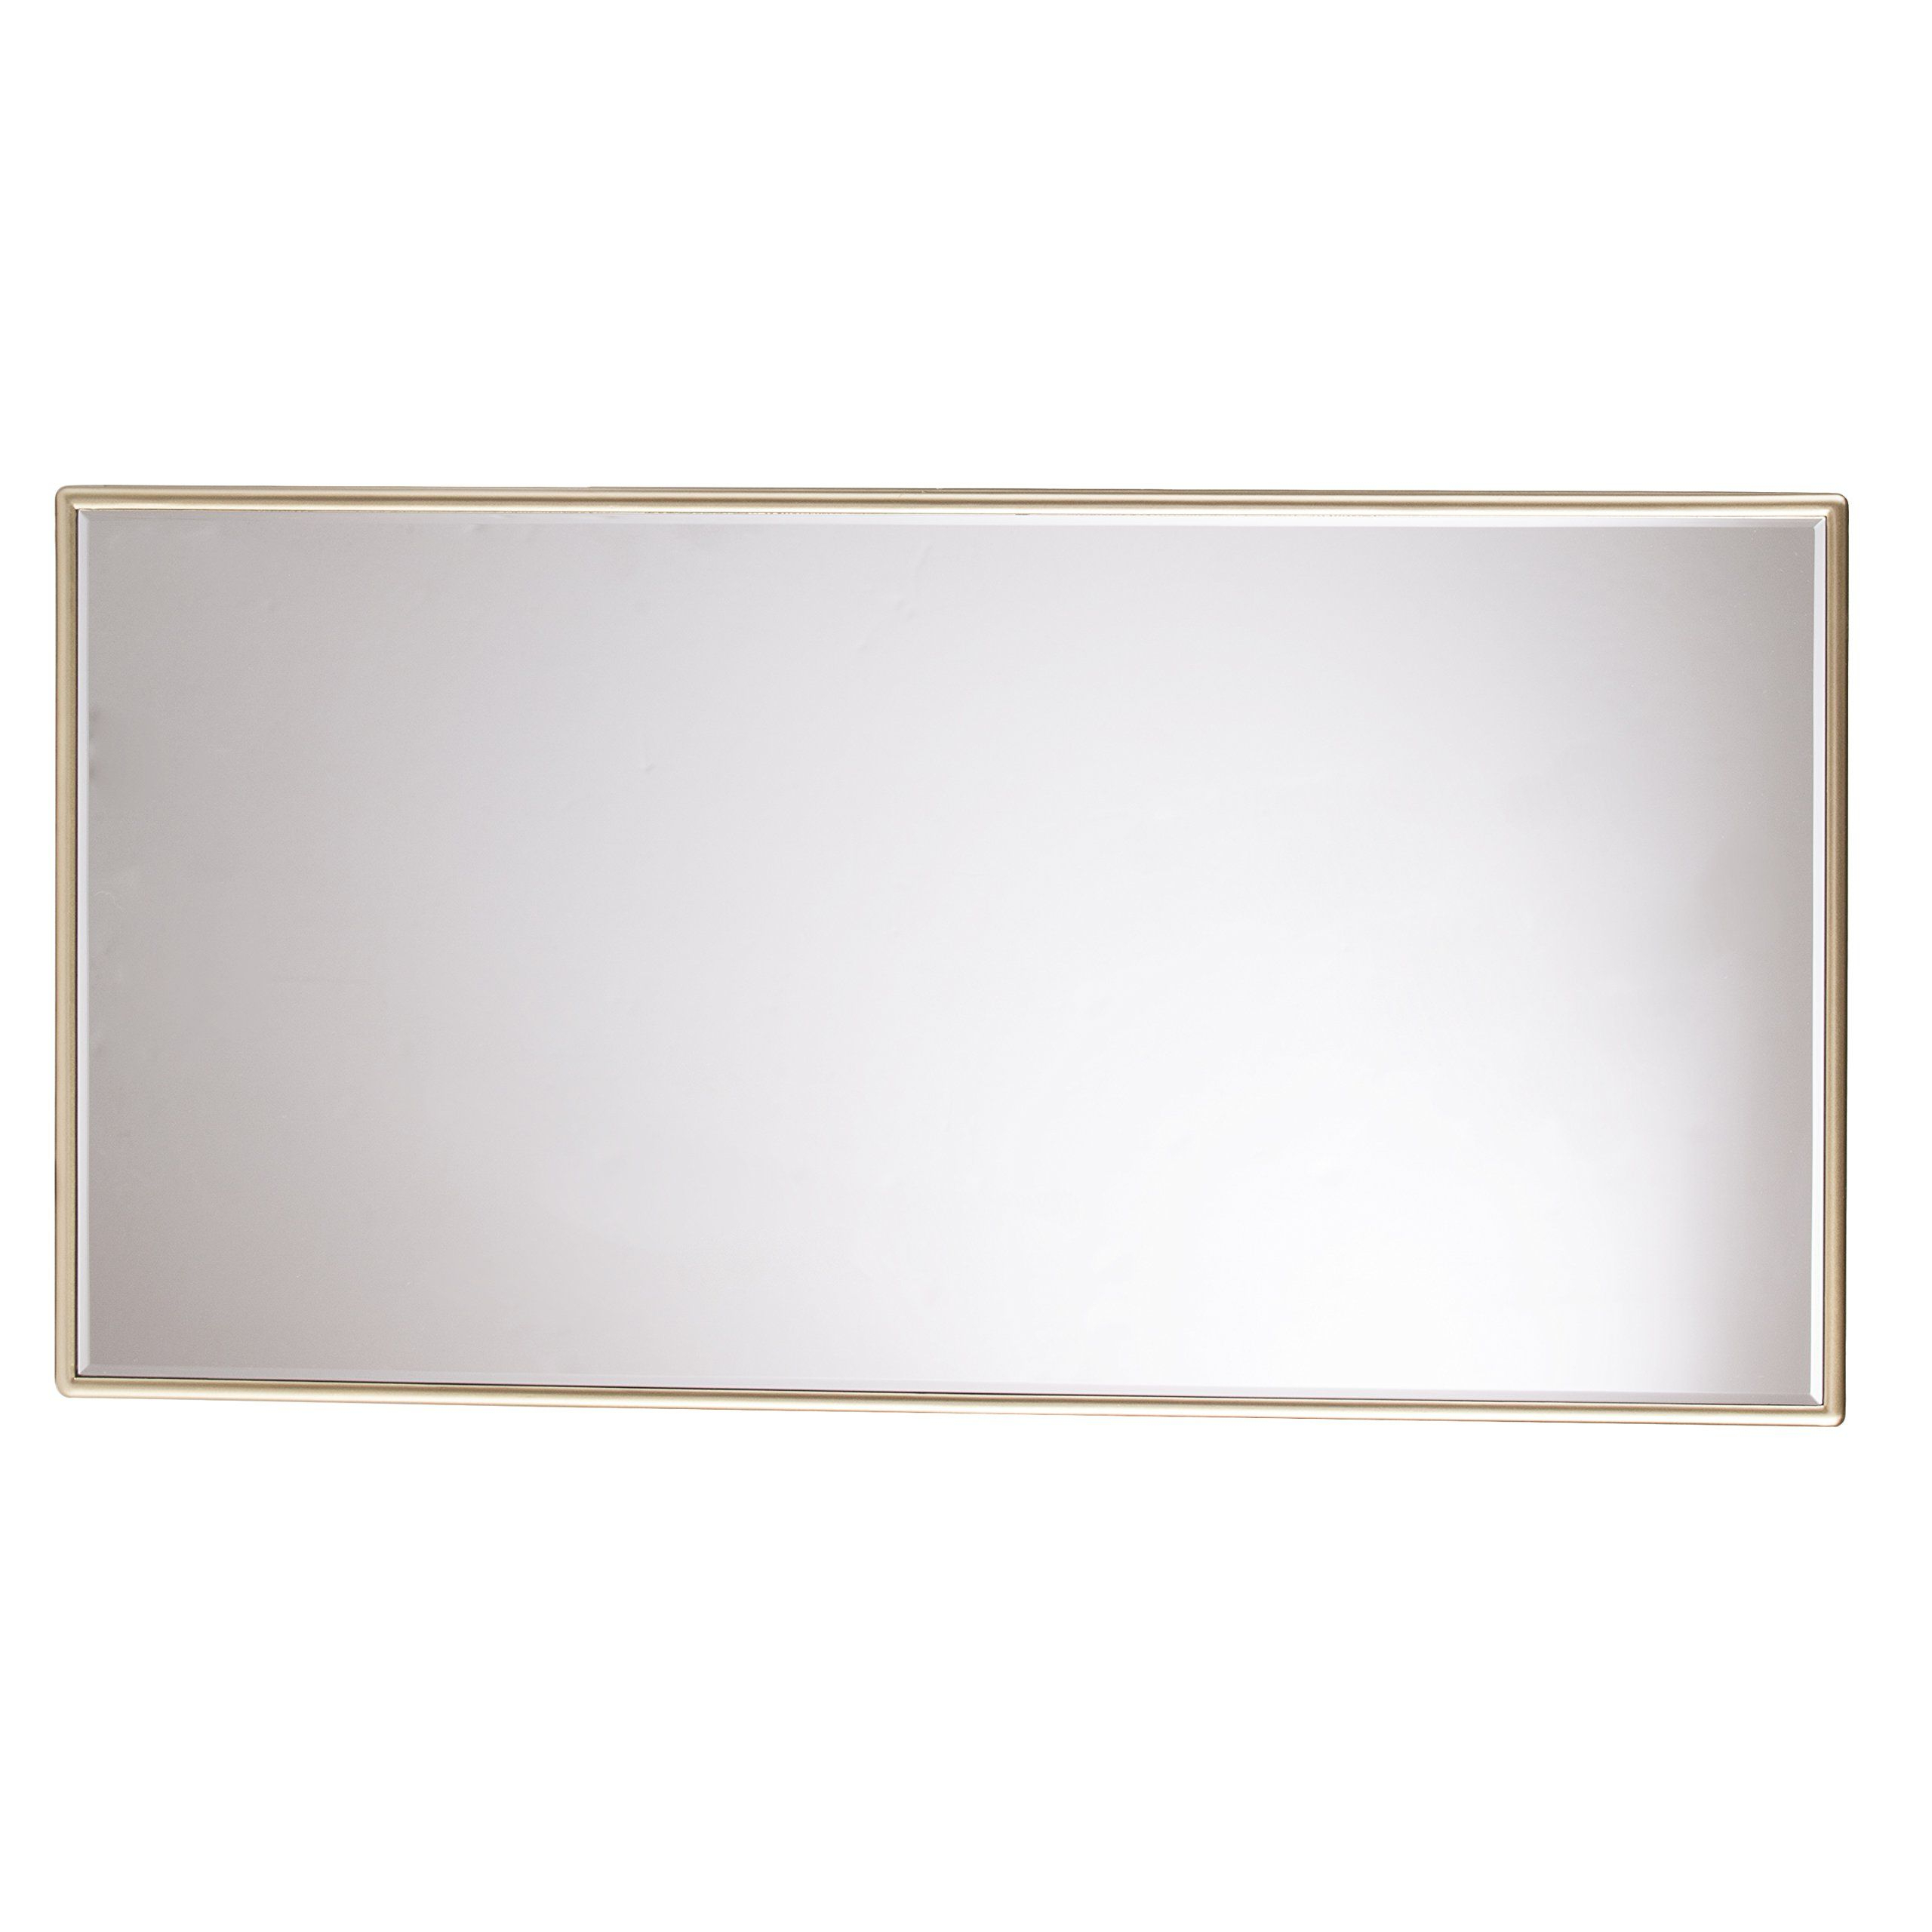 Furniture Hotspot Mirrored Coffee Table Mirror W/champagne Intended For Most Recently Released Velma Modern Satin Plated Coffee Tables (View 18 of 20)